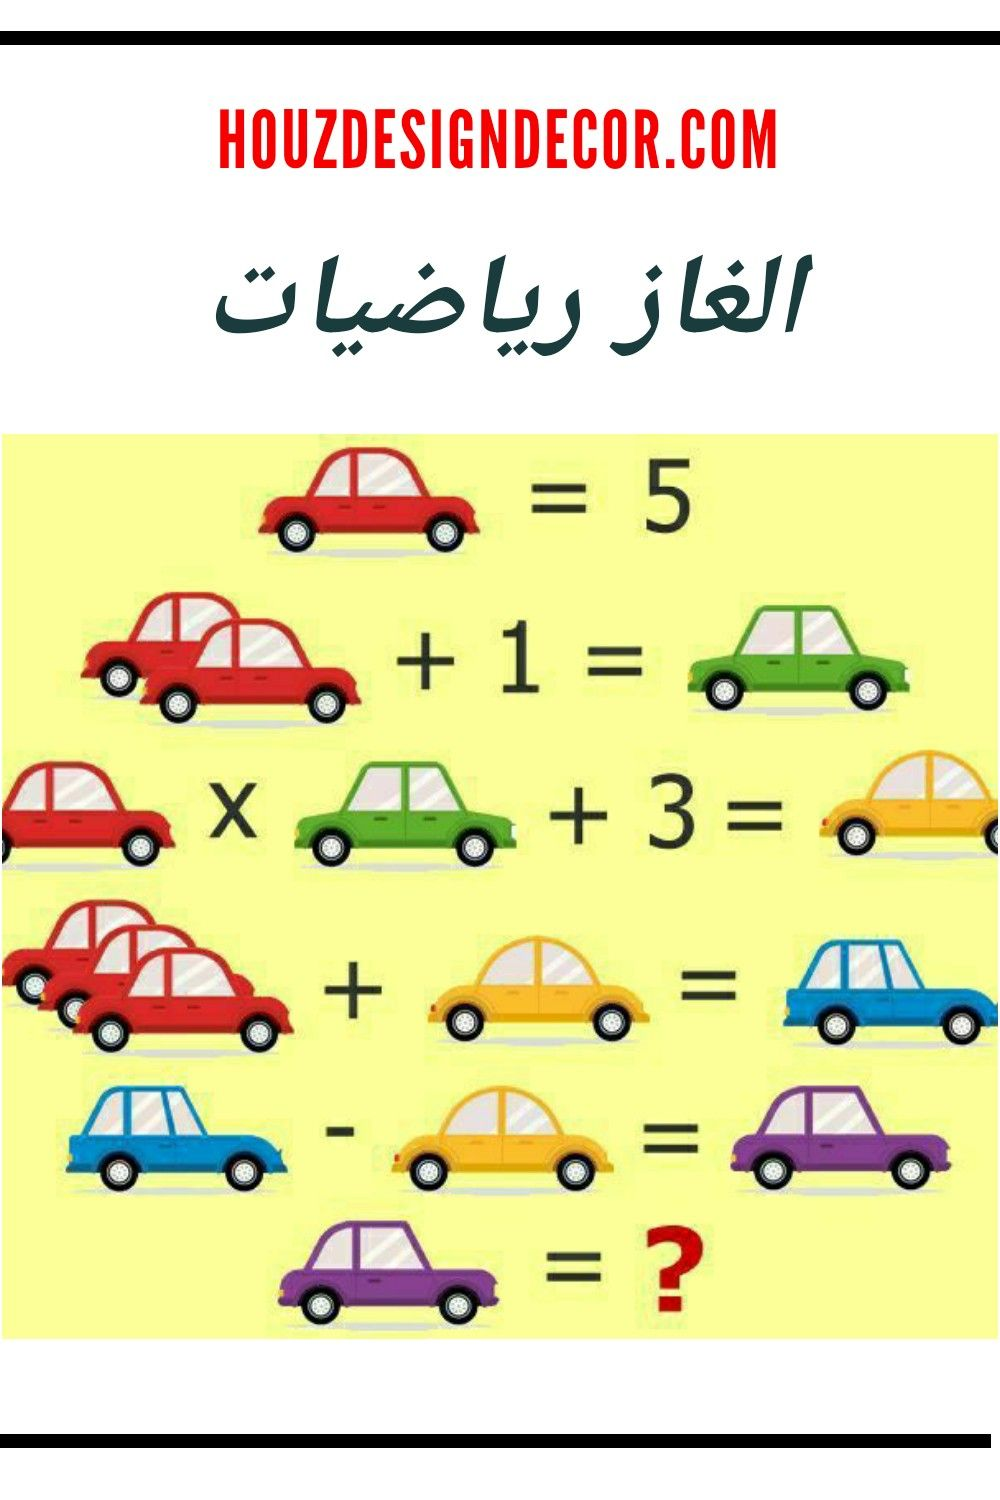 الغاز ذكاء Arabic Kids Physics Tricks This Or That Questions